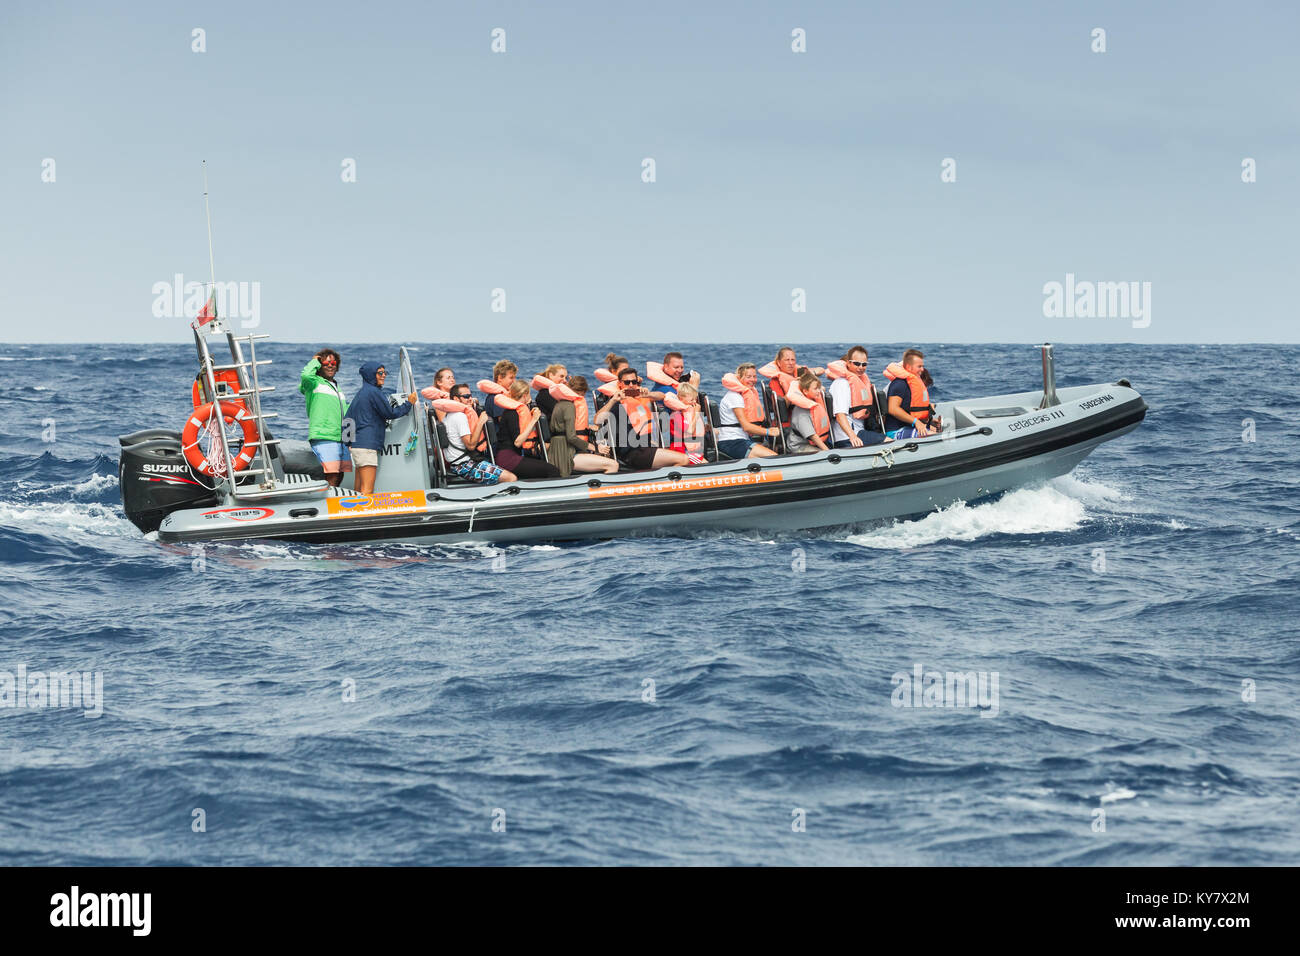 Funchal, Portugal - August 24, 2017: Tourists are in a fast motor boat during whale and dolphins watching trip - Stock Image